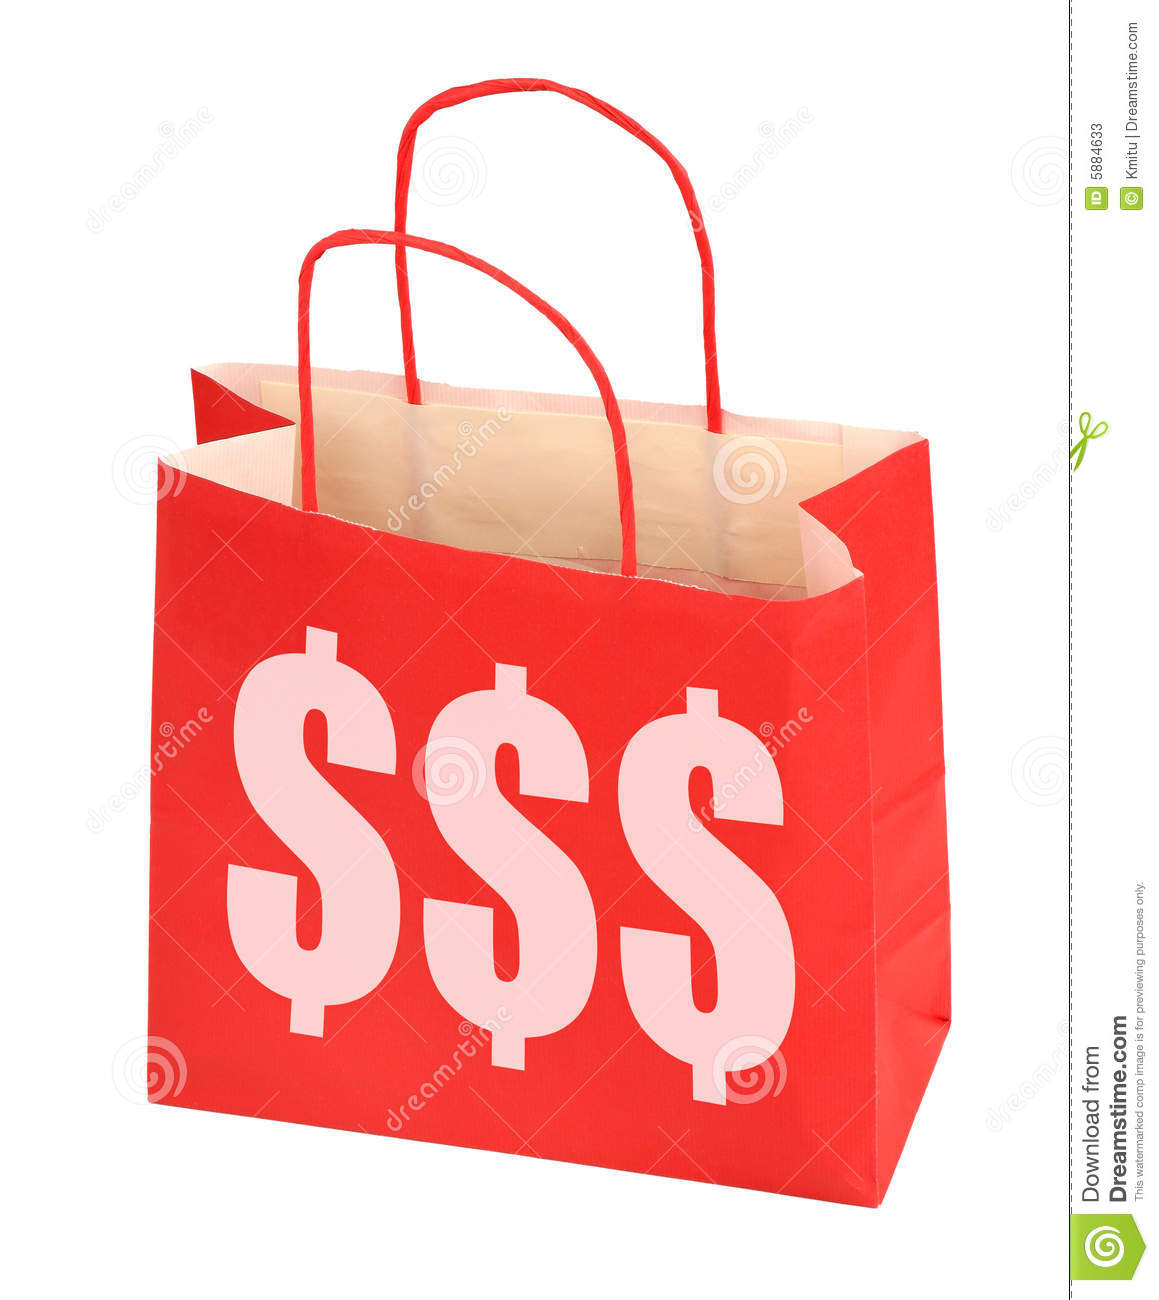 Red shopping bag with dollar sign